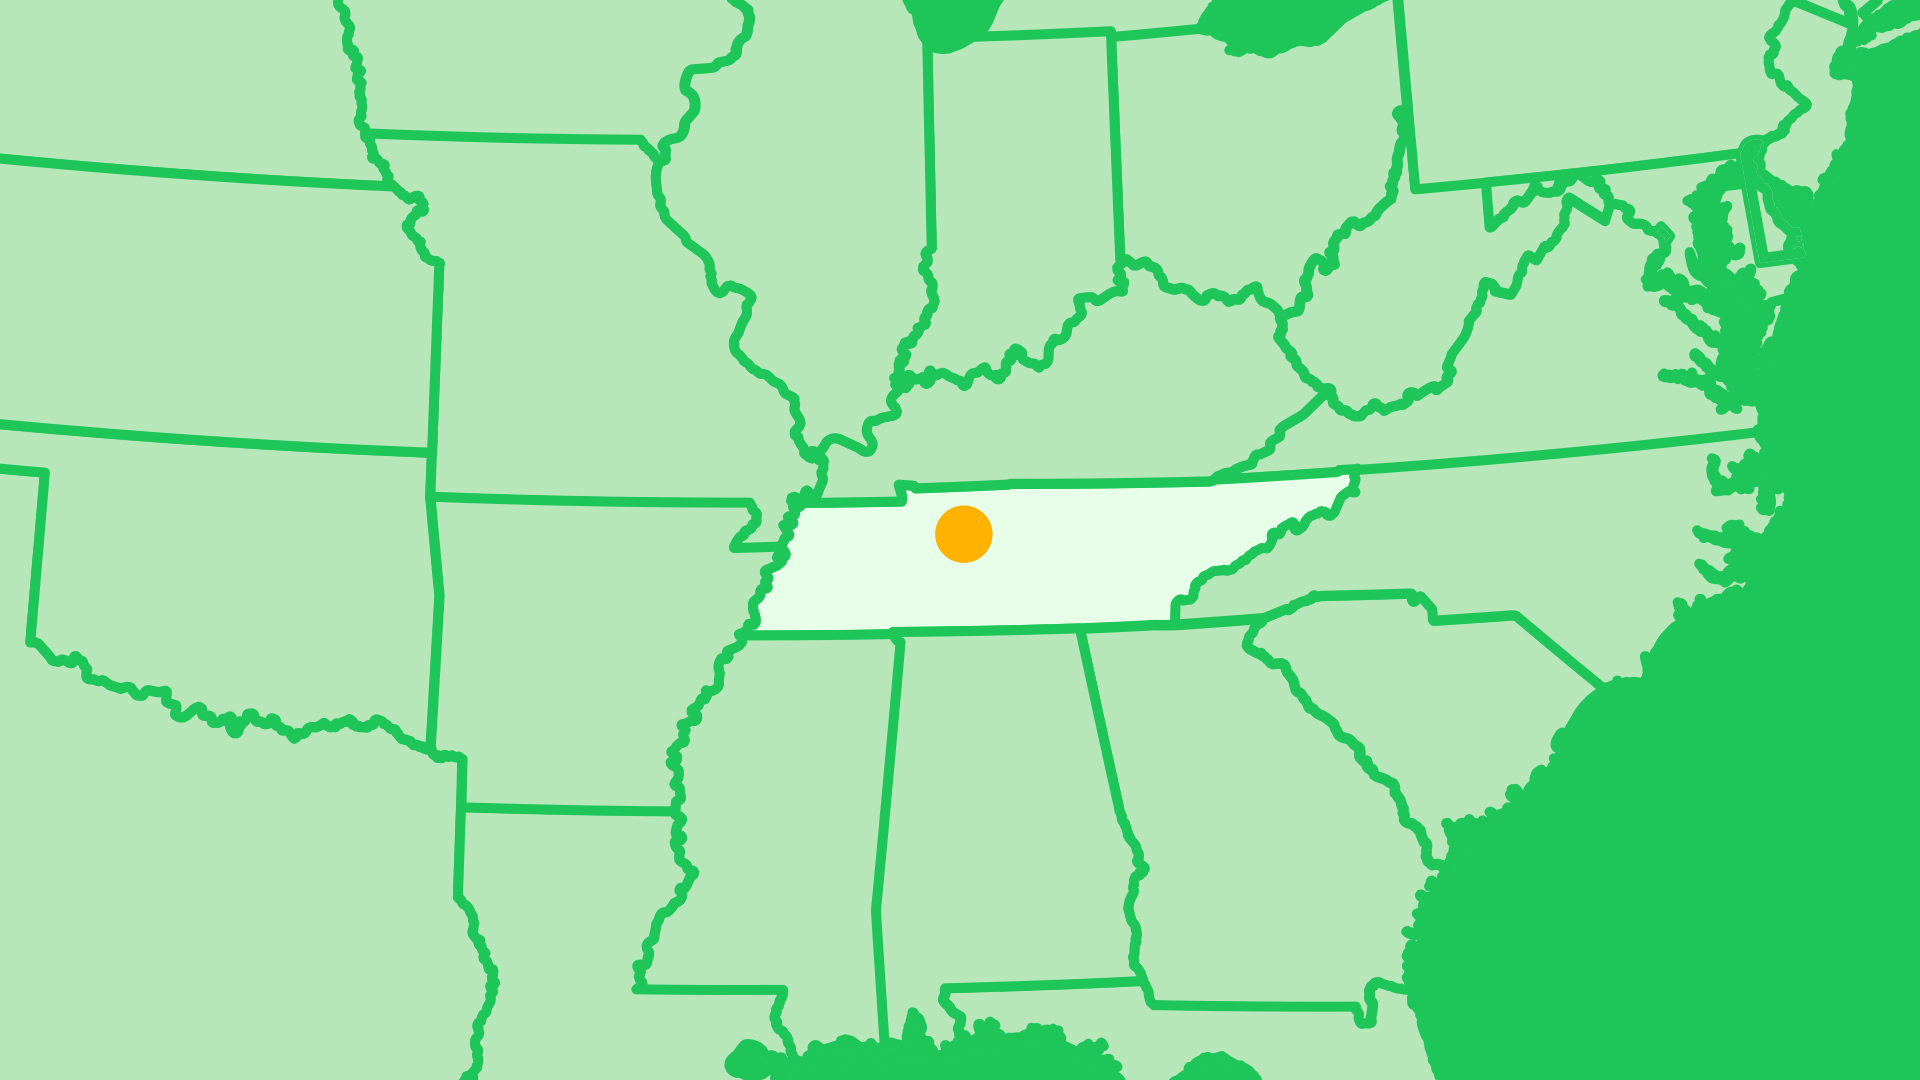 Nashville migration map